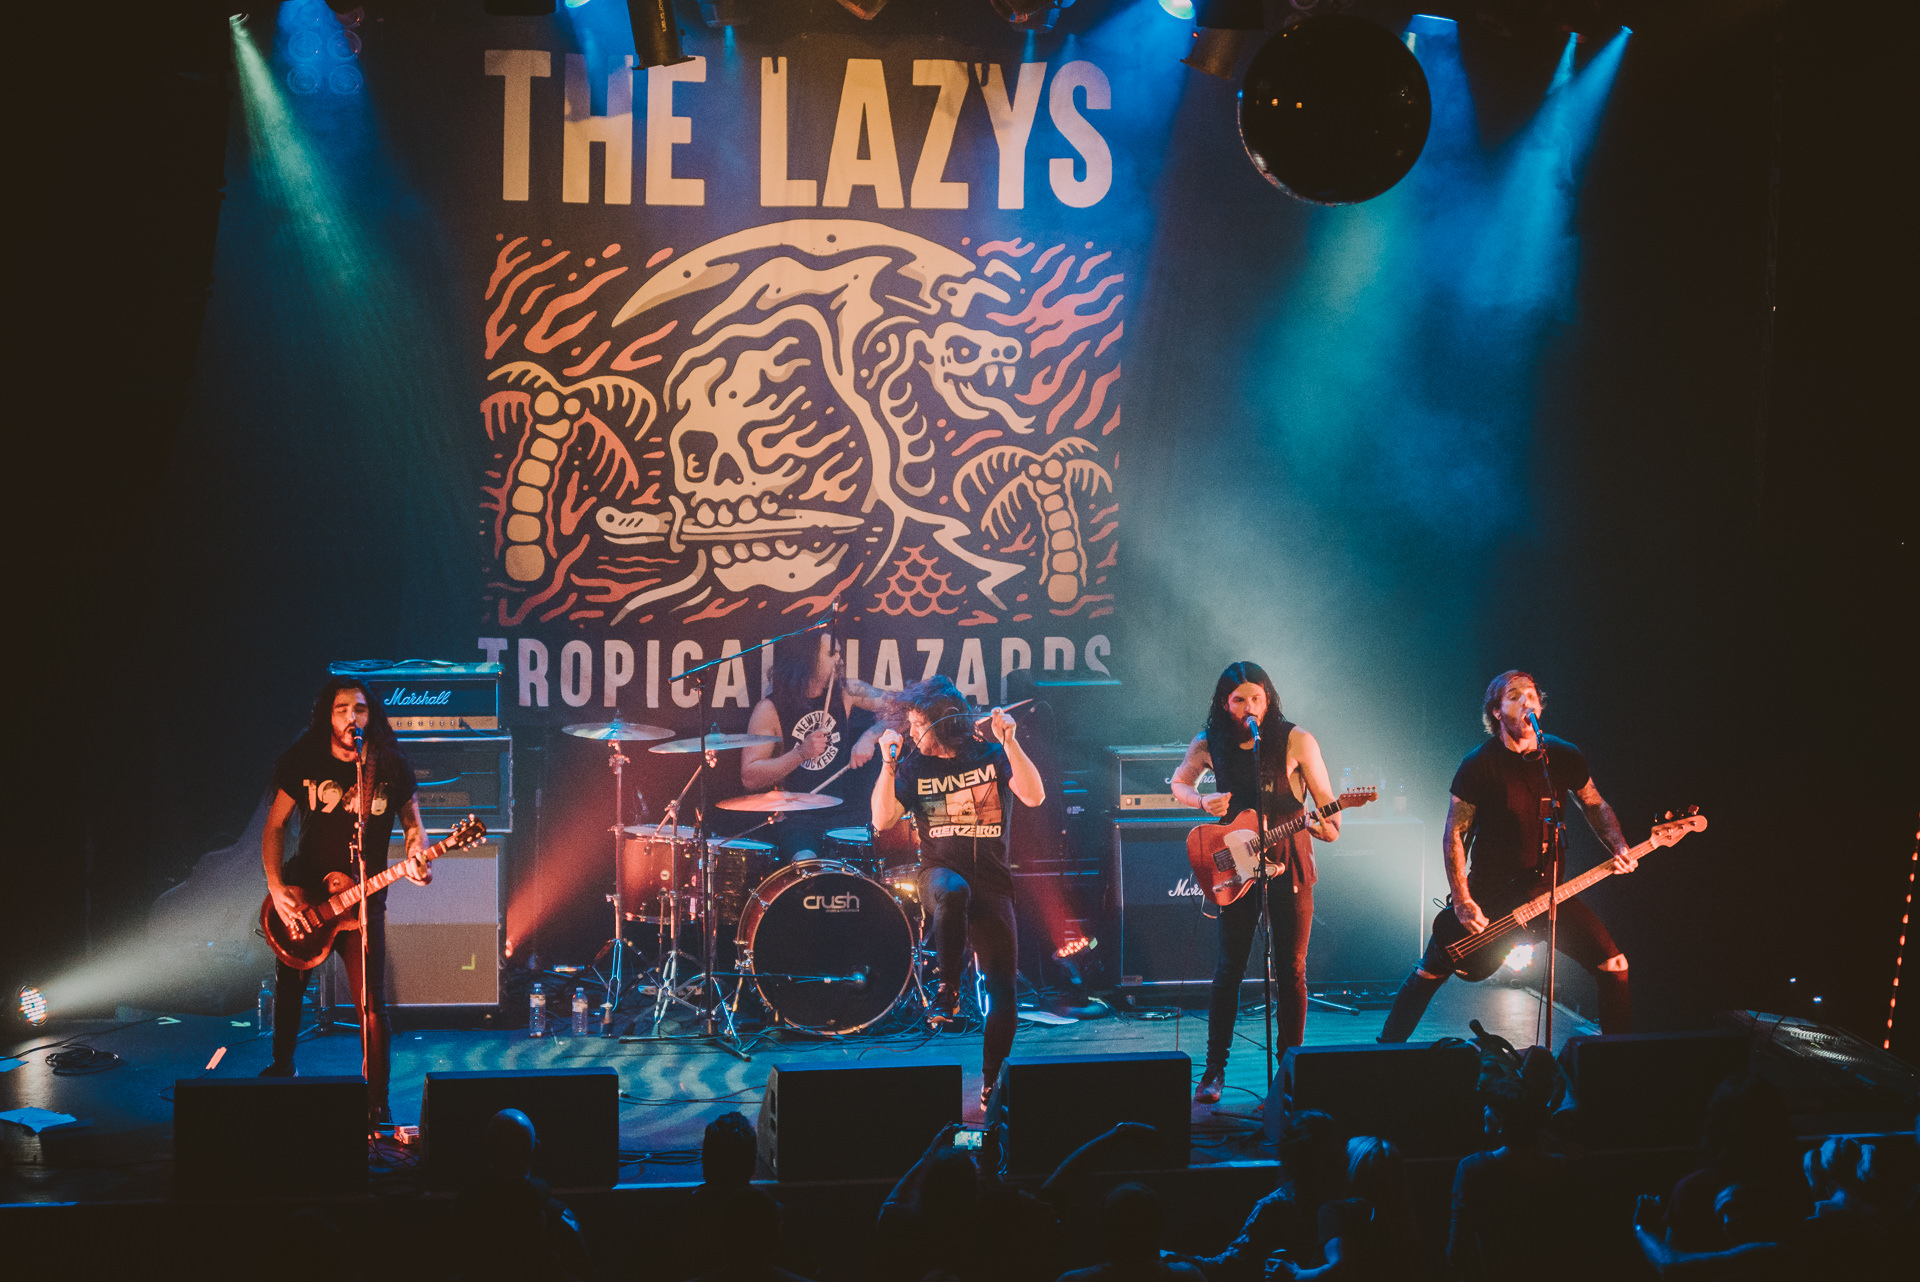 1_The_Lazys-VENUE-Timothy_Nguyen-20181114 (30 of 33).jpg